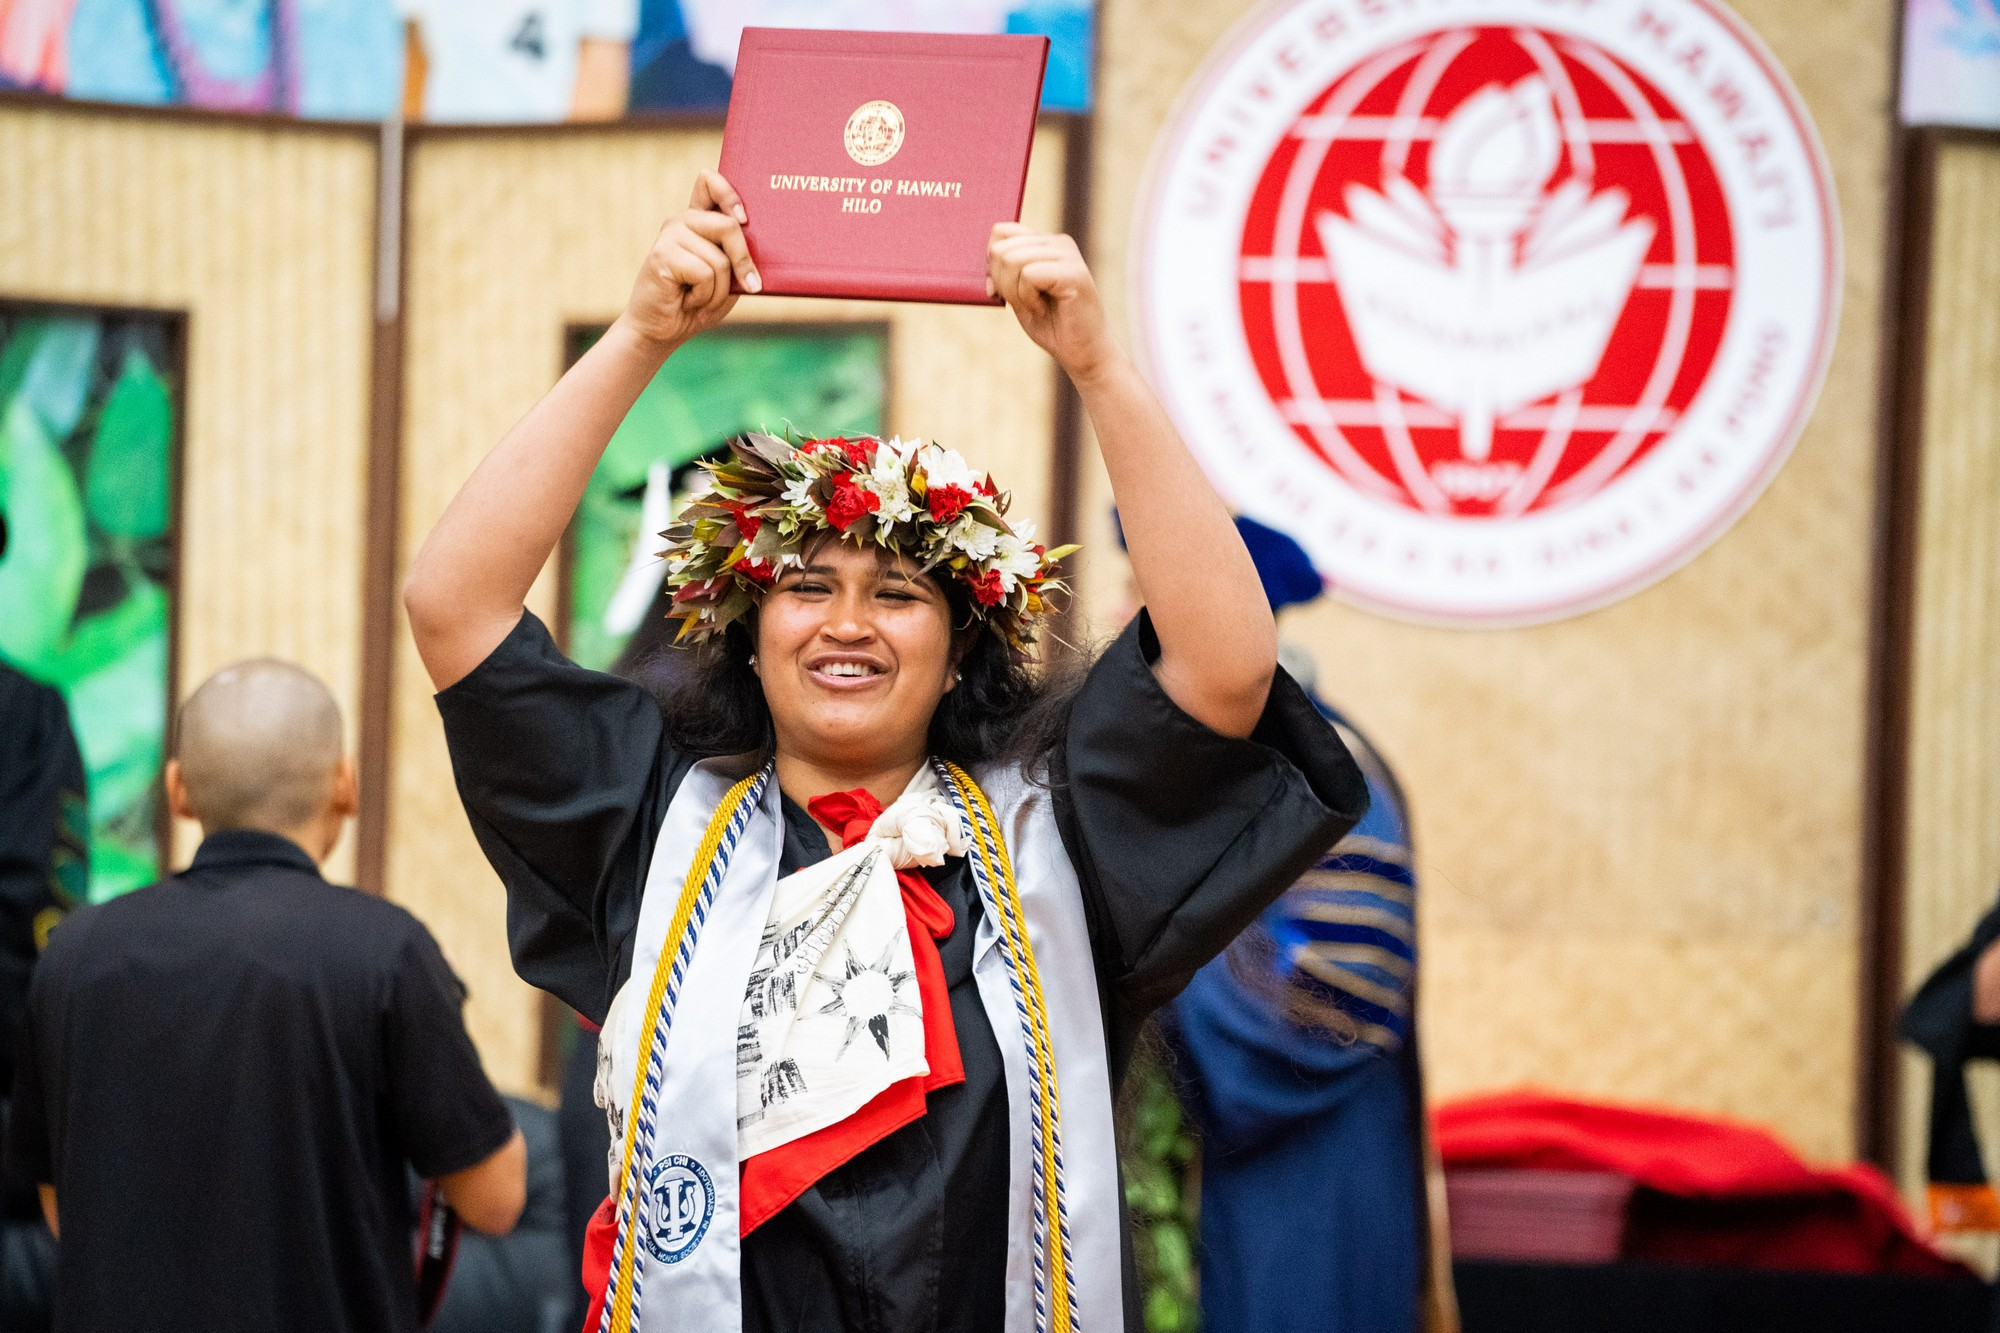 Woman graduate descends from the dais holding diploma overhead